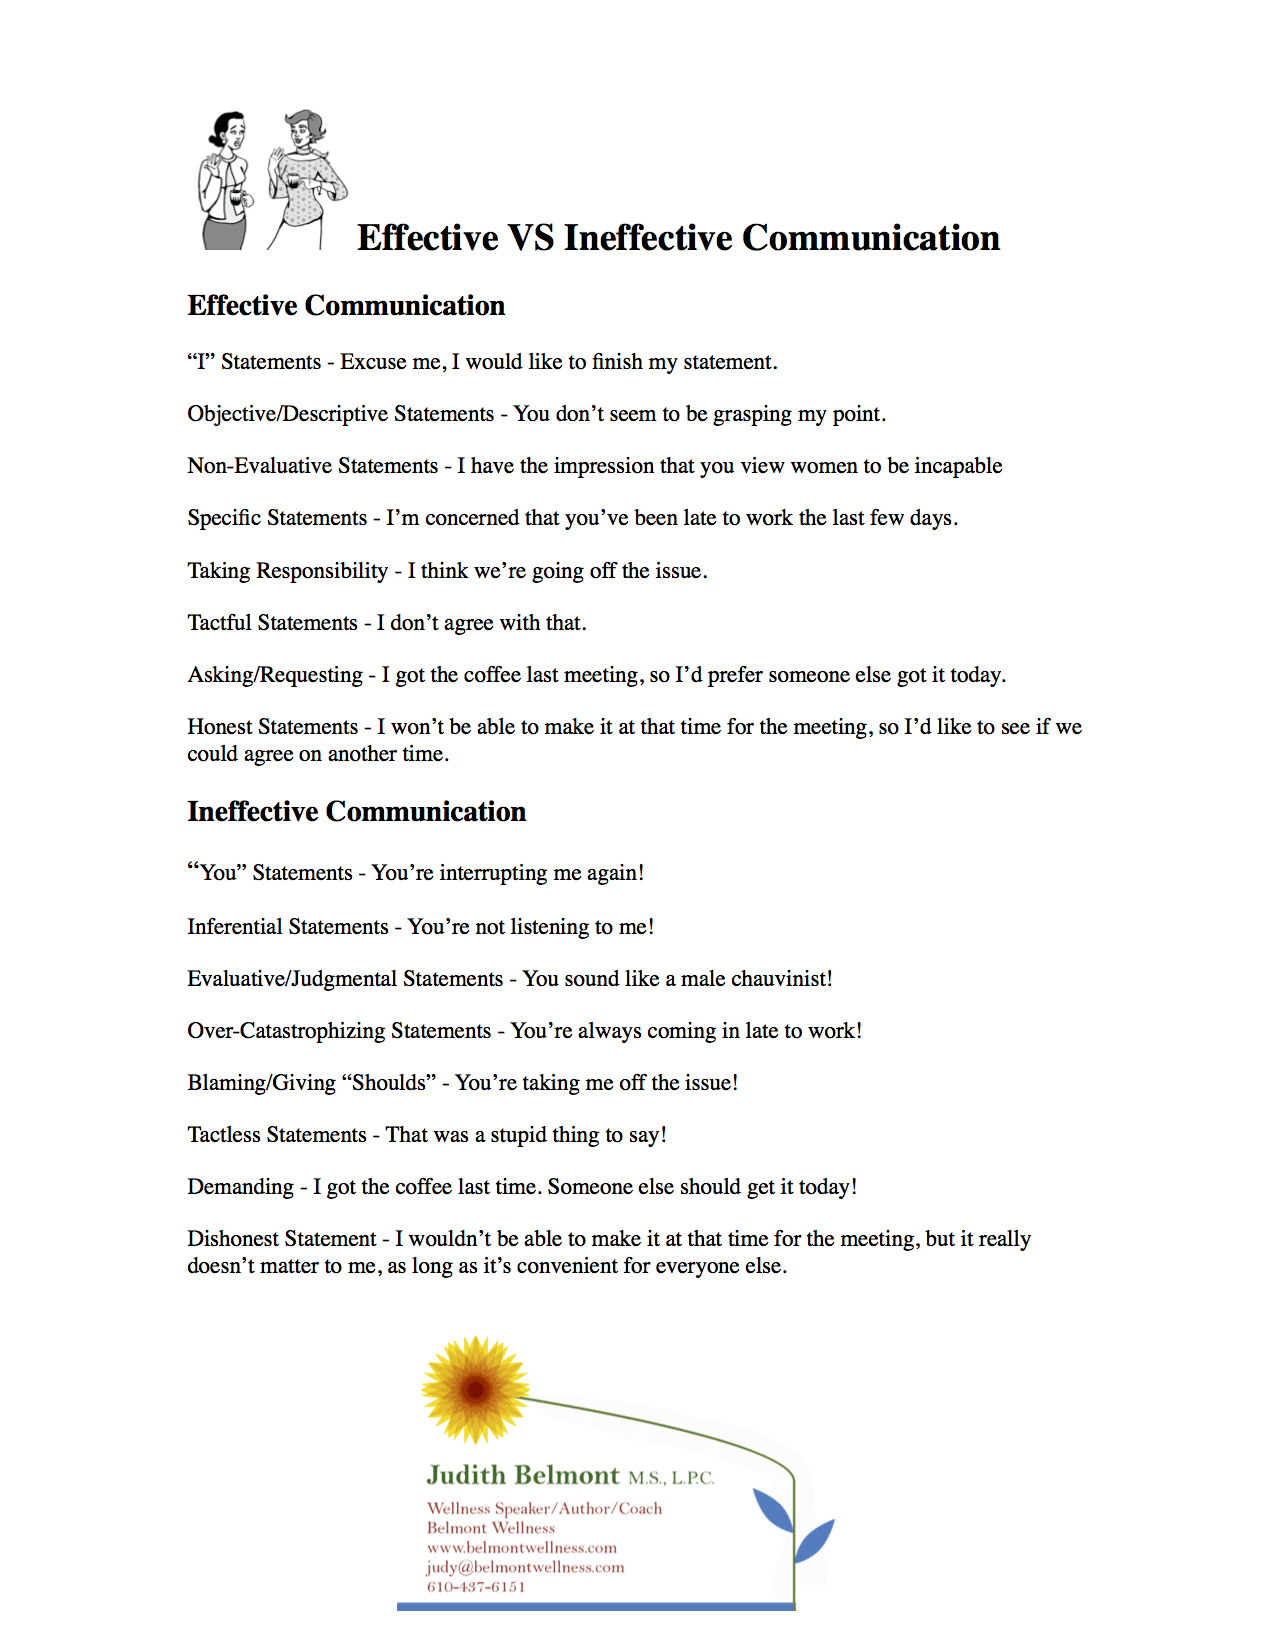 Effective Vs Ineffective Communication